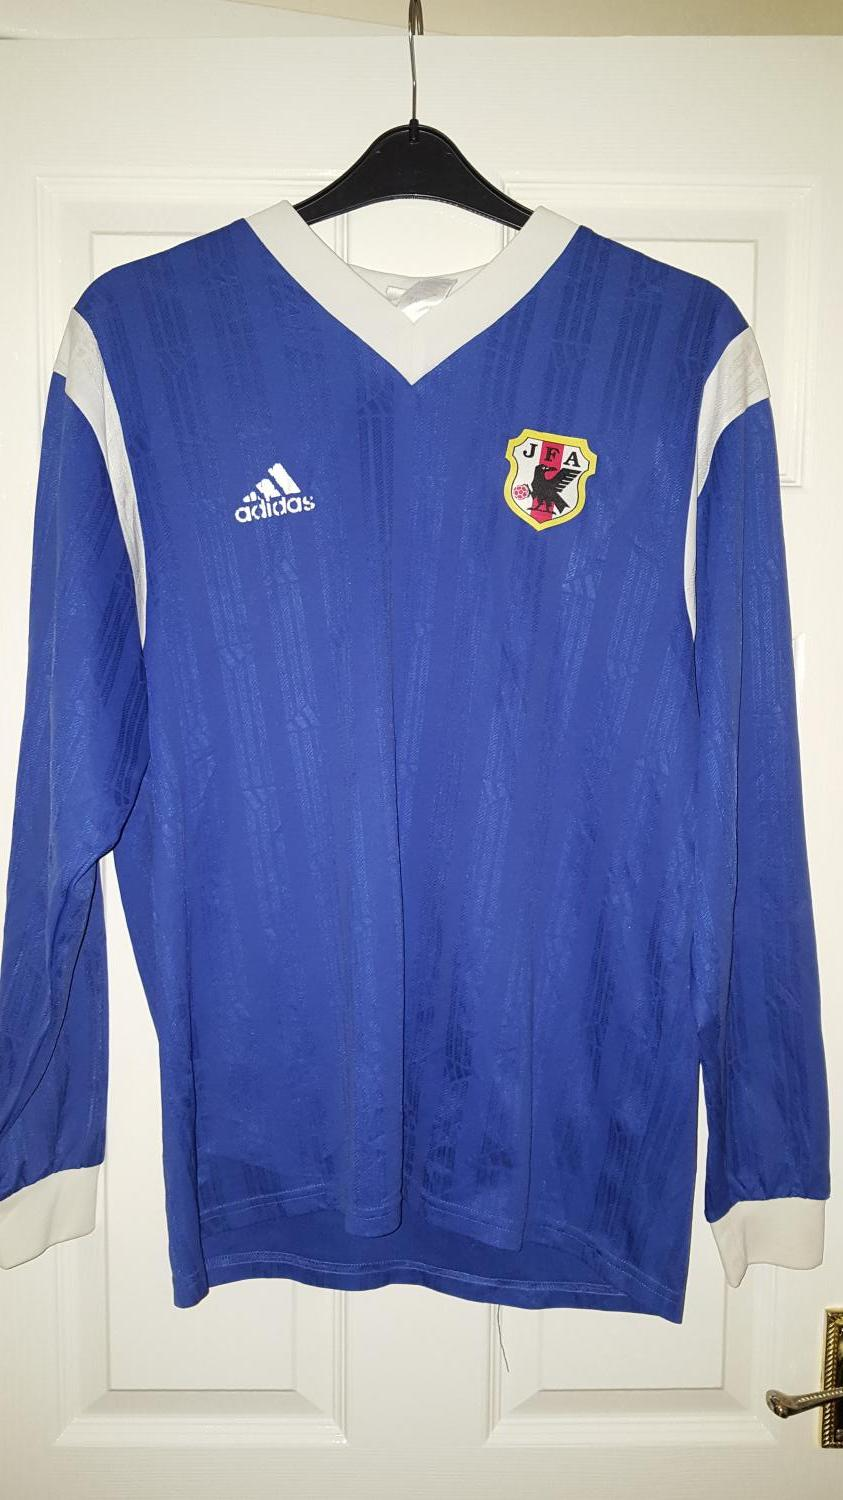 56c971a0980 Japan Home maglia di calcio (unknown year).